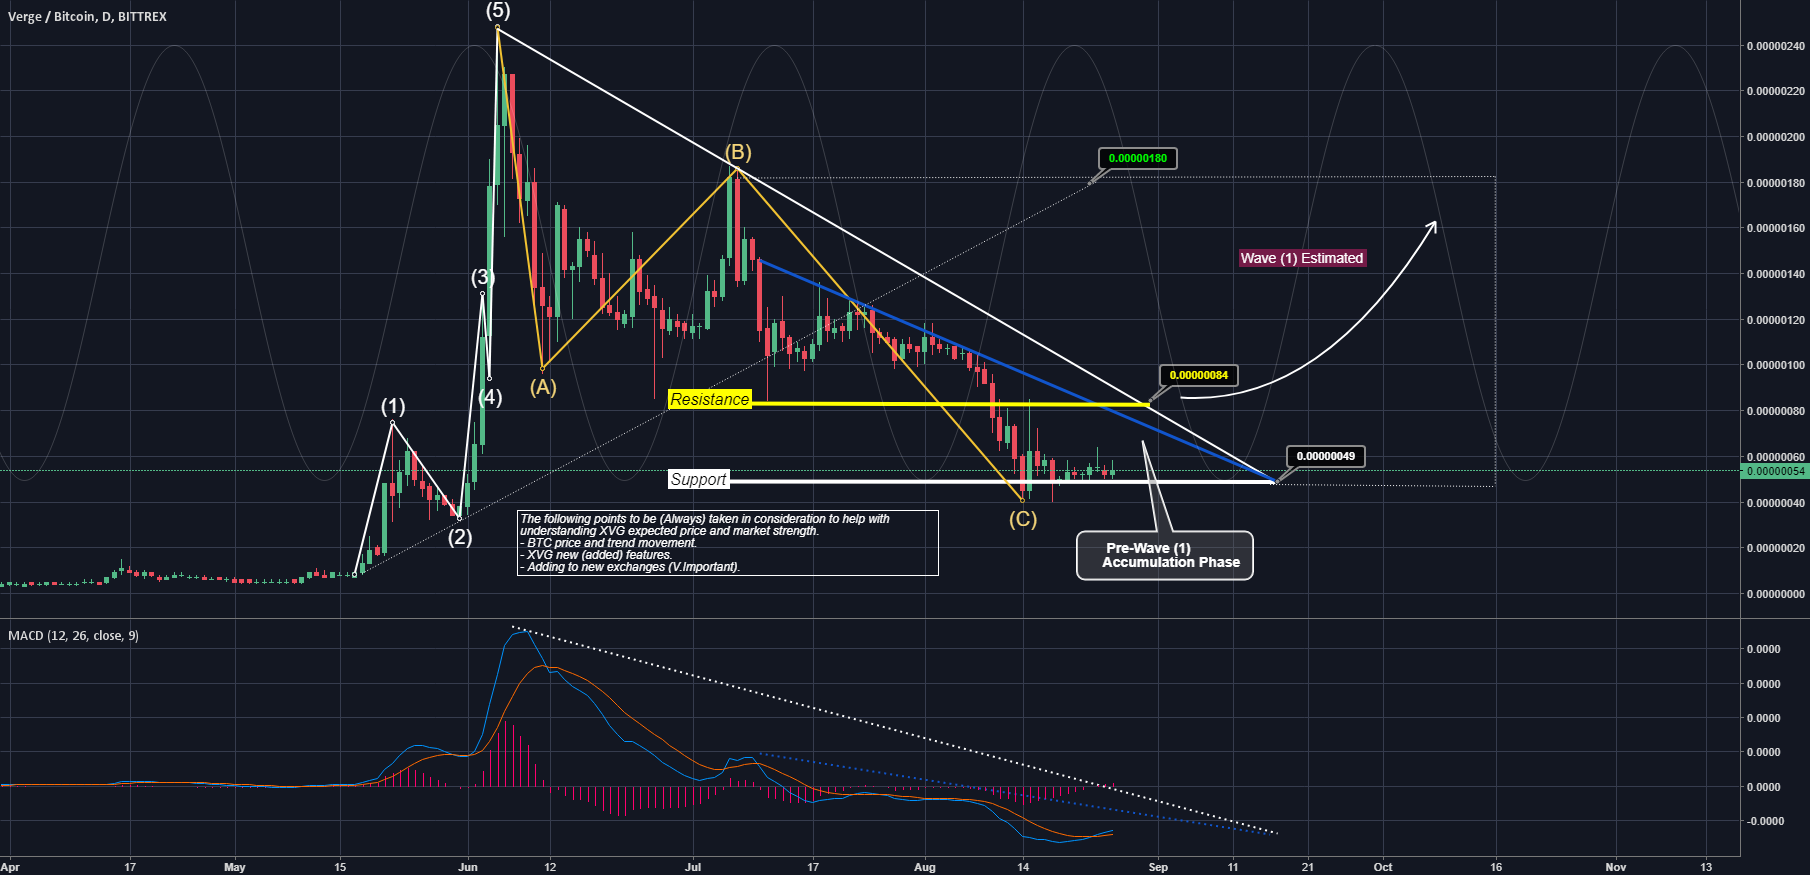 Verge (XVG) market prediction - End of E.Wave Correction Wave(C)